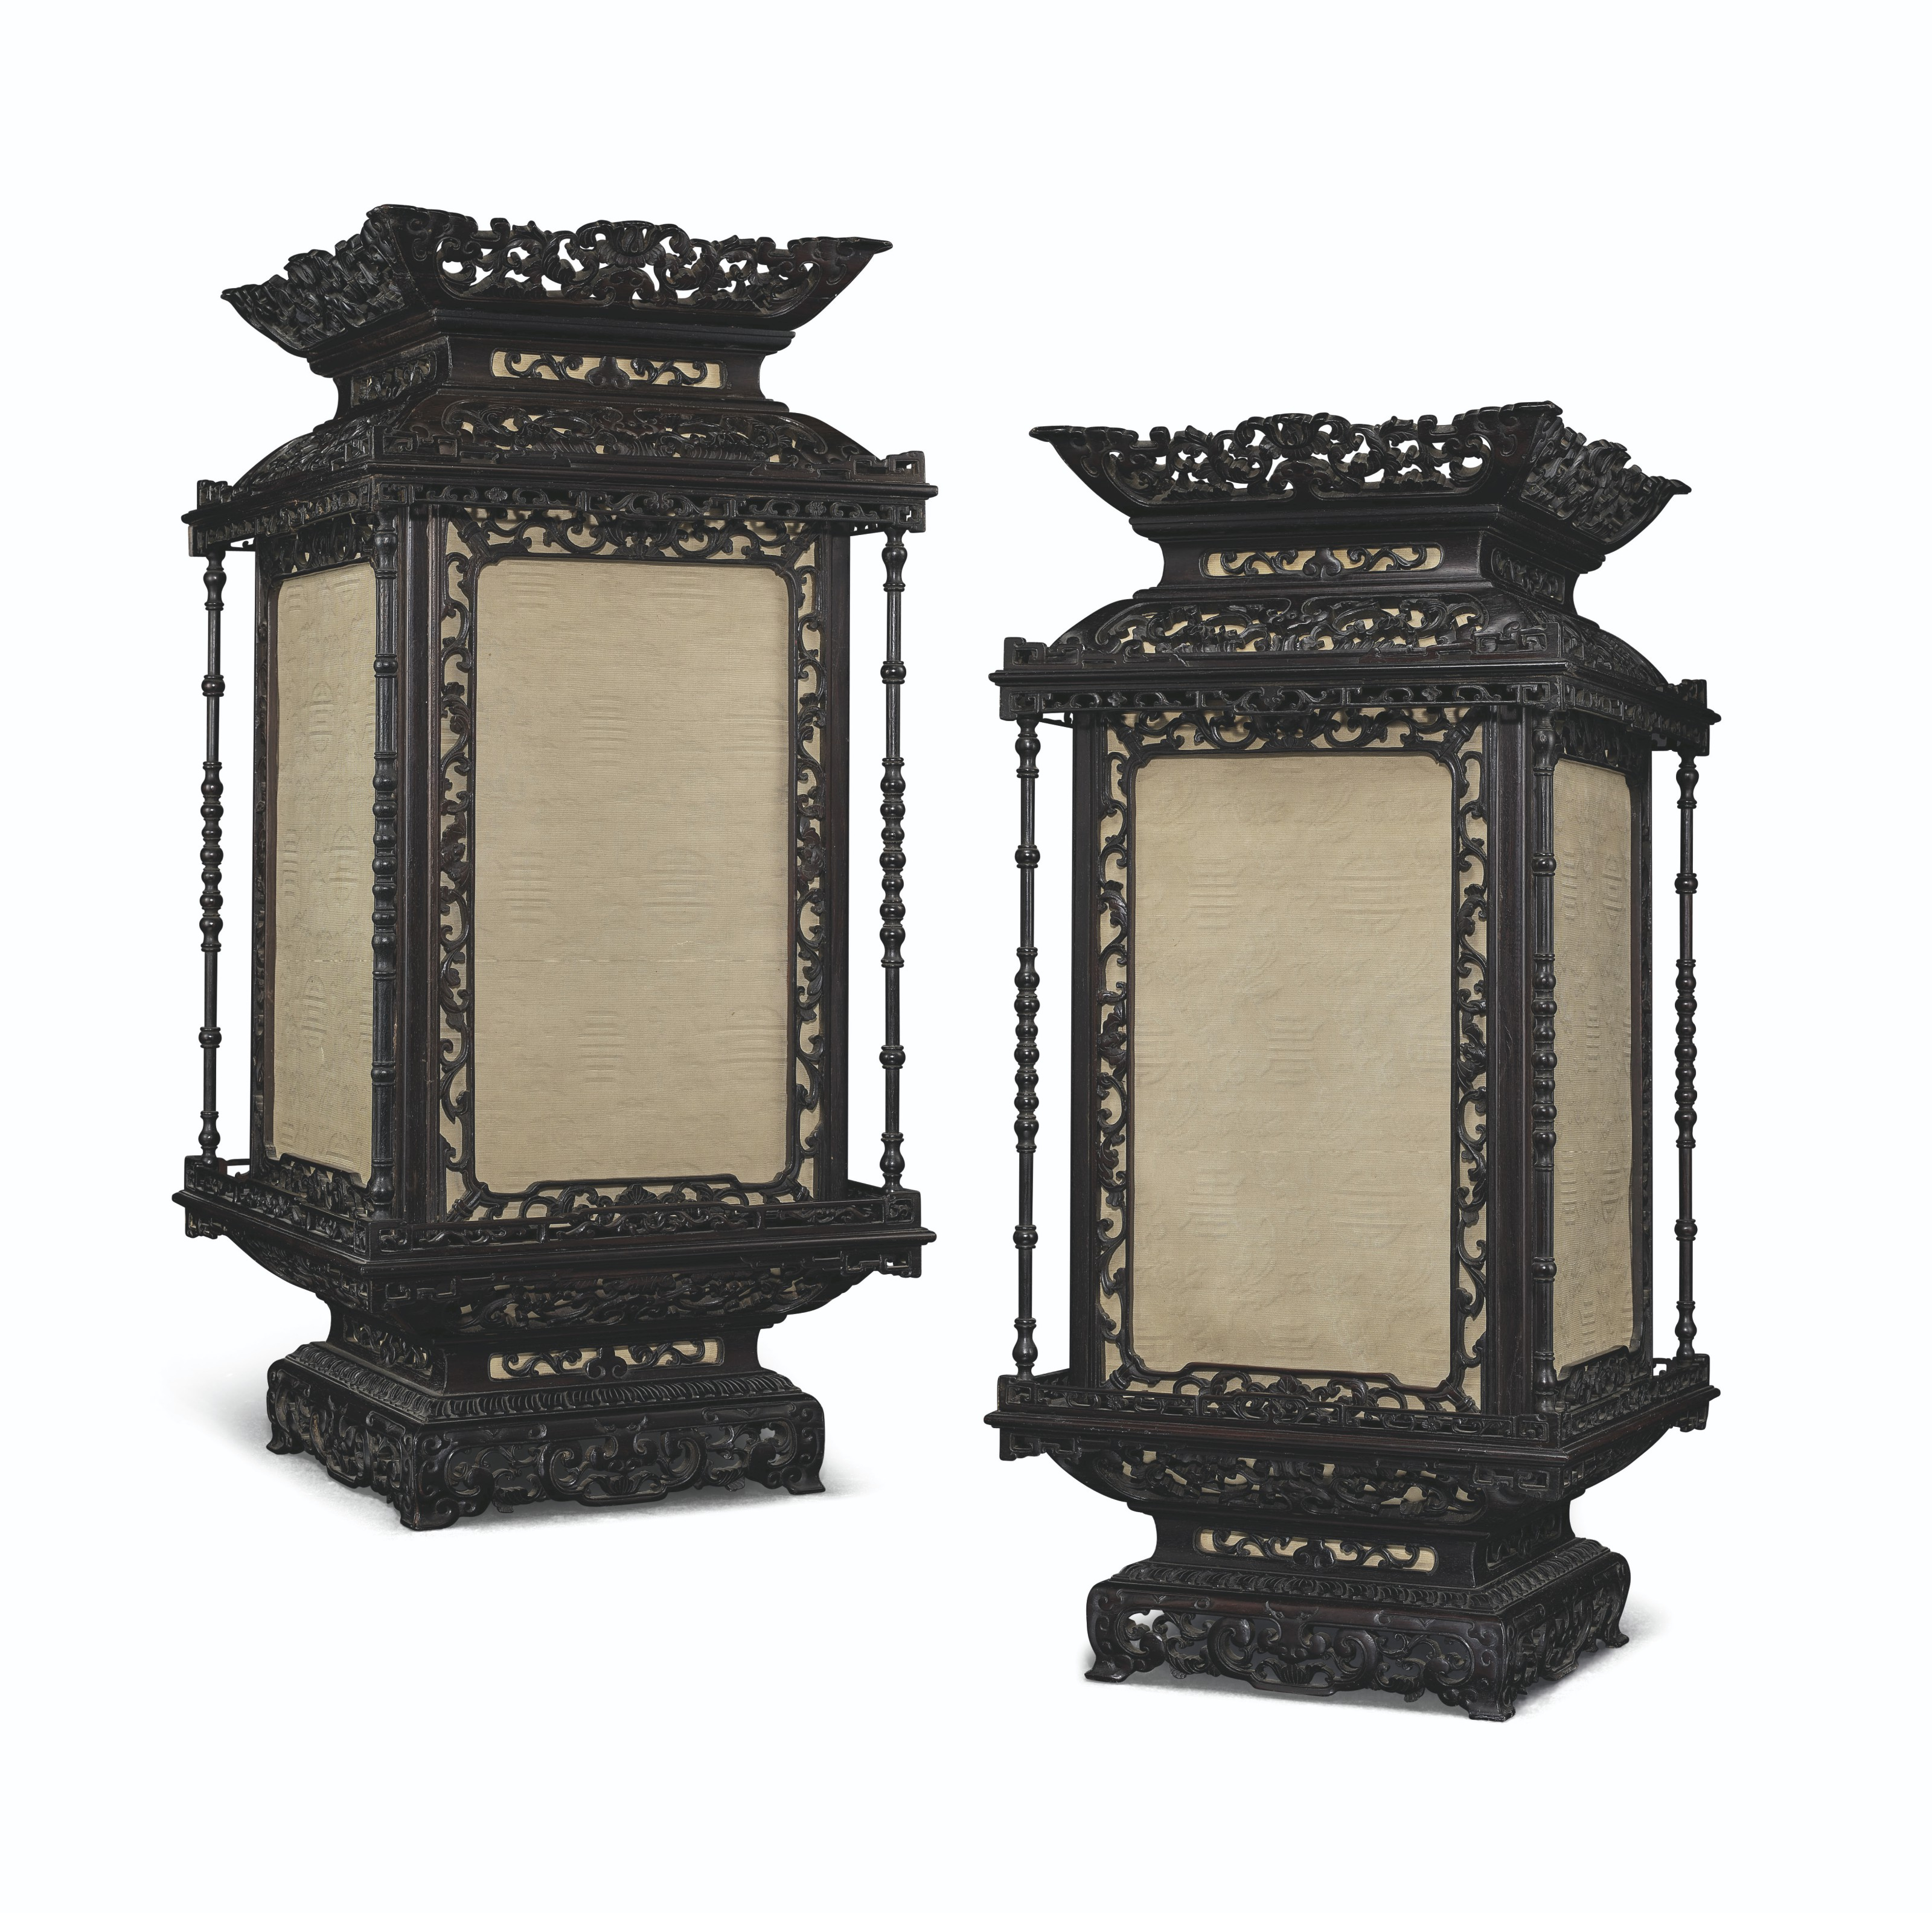 AN EXTREMELY RARE PAIR OF IMPERIAL ZITAN SQUARE LANTERNS